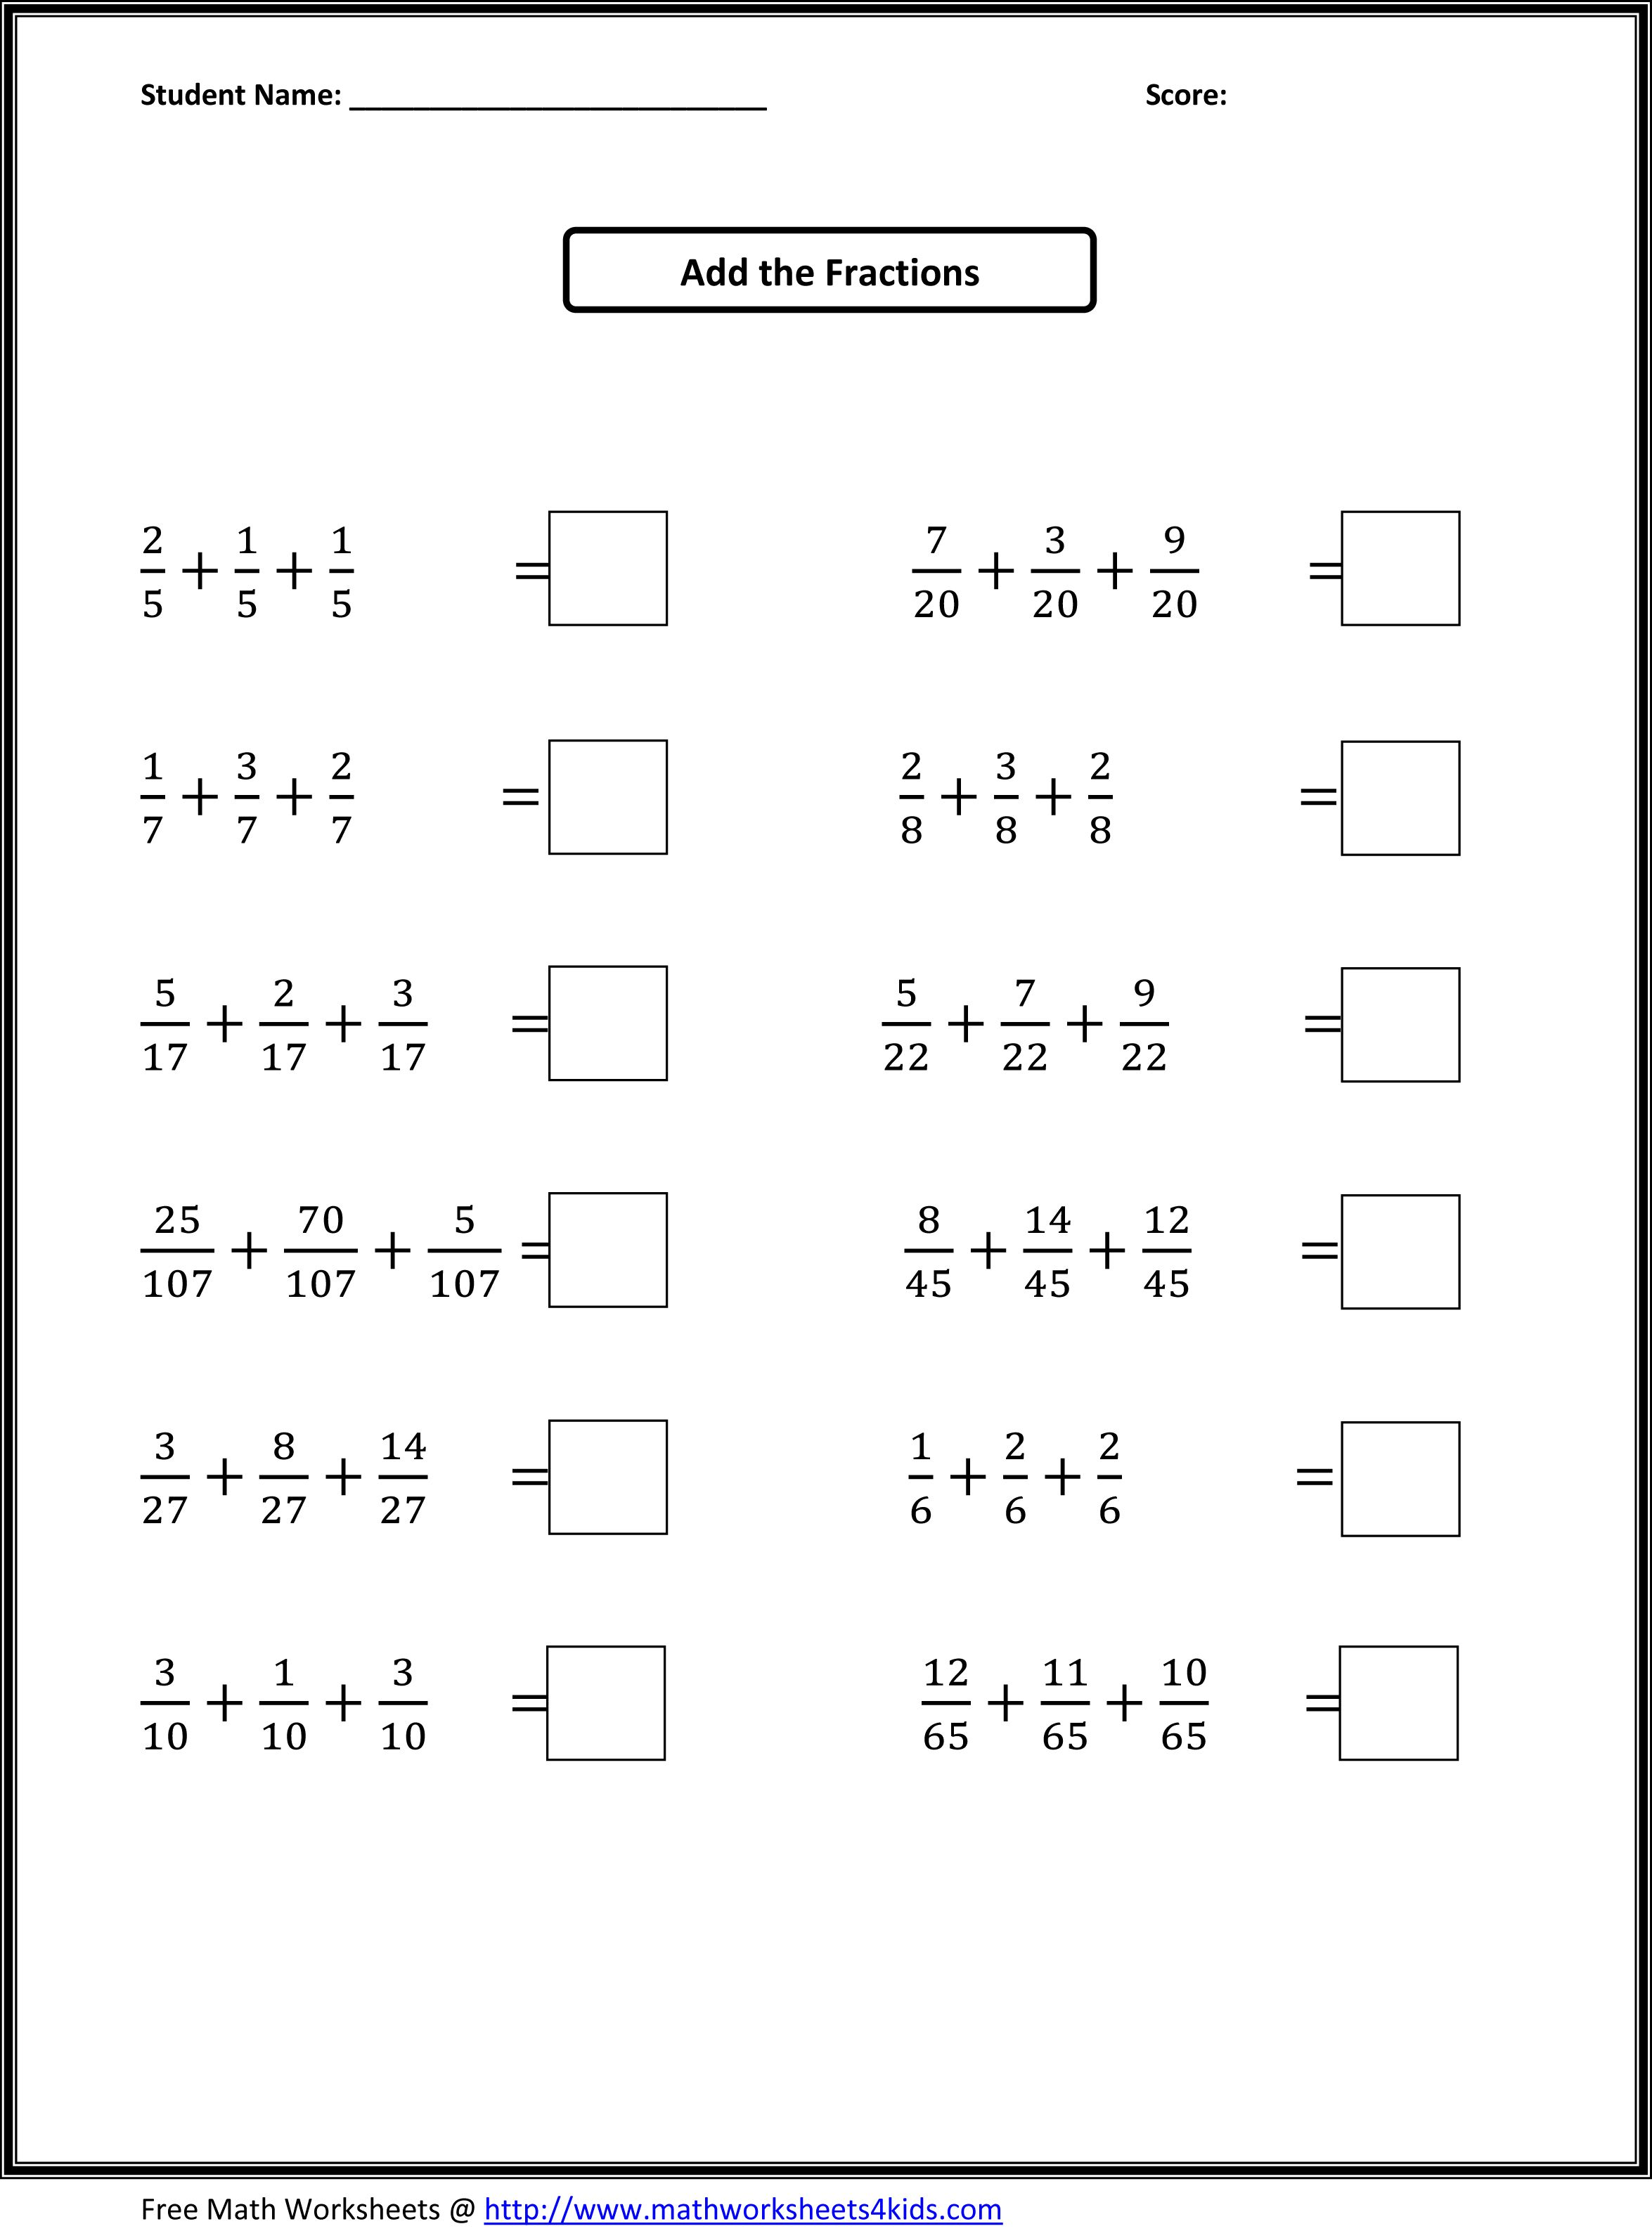 Uncategorized Math Fractions Worksheets worksheets for all early ed grades topics of math fractions